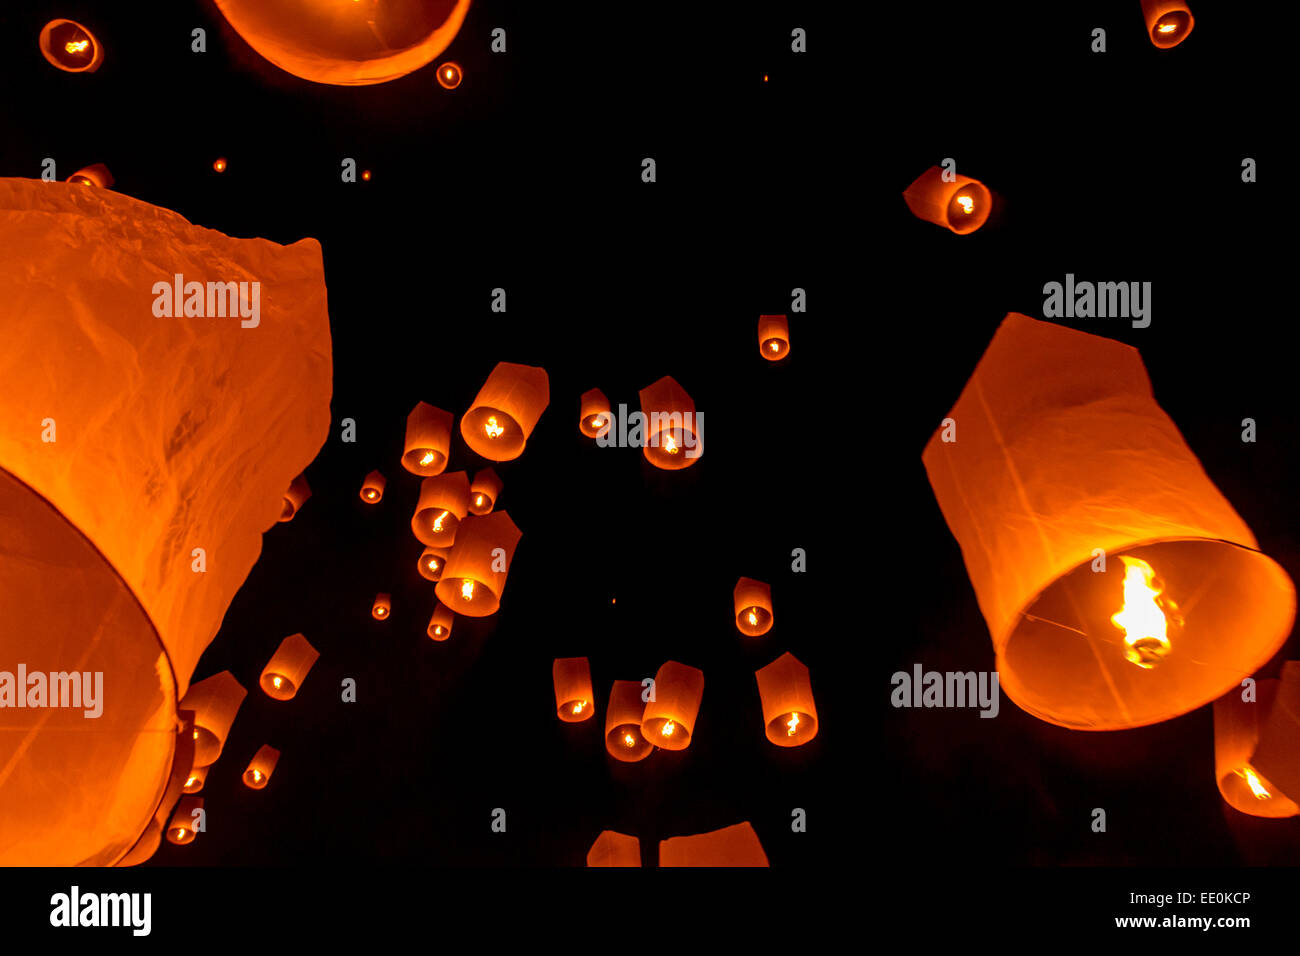 lighted paper lanterns float skyward into the dark night as part of